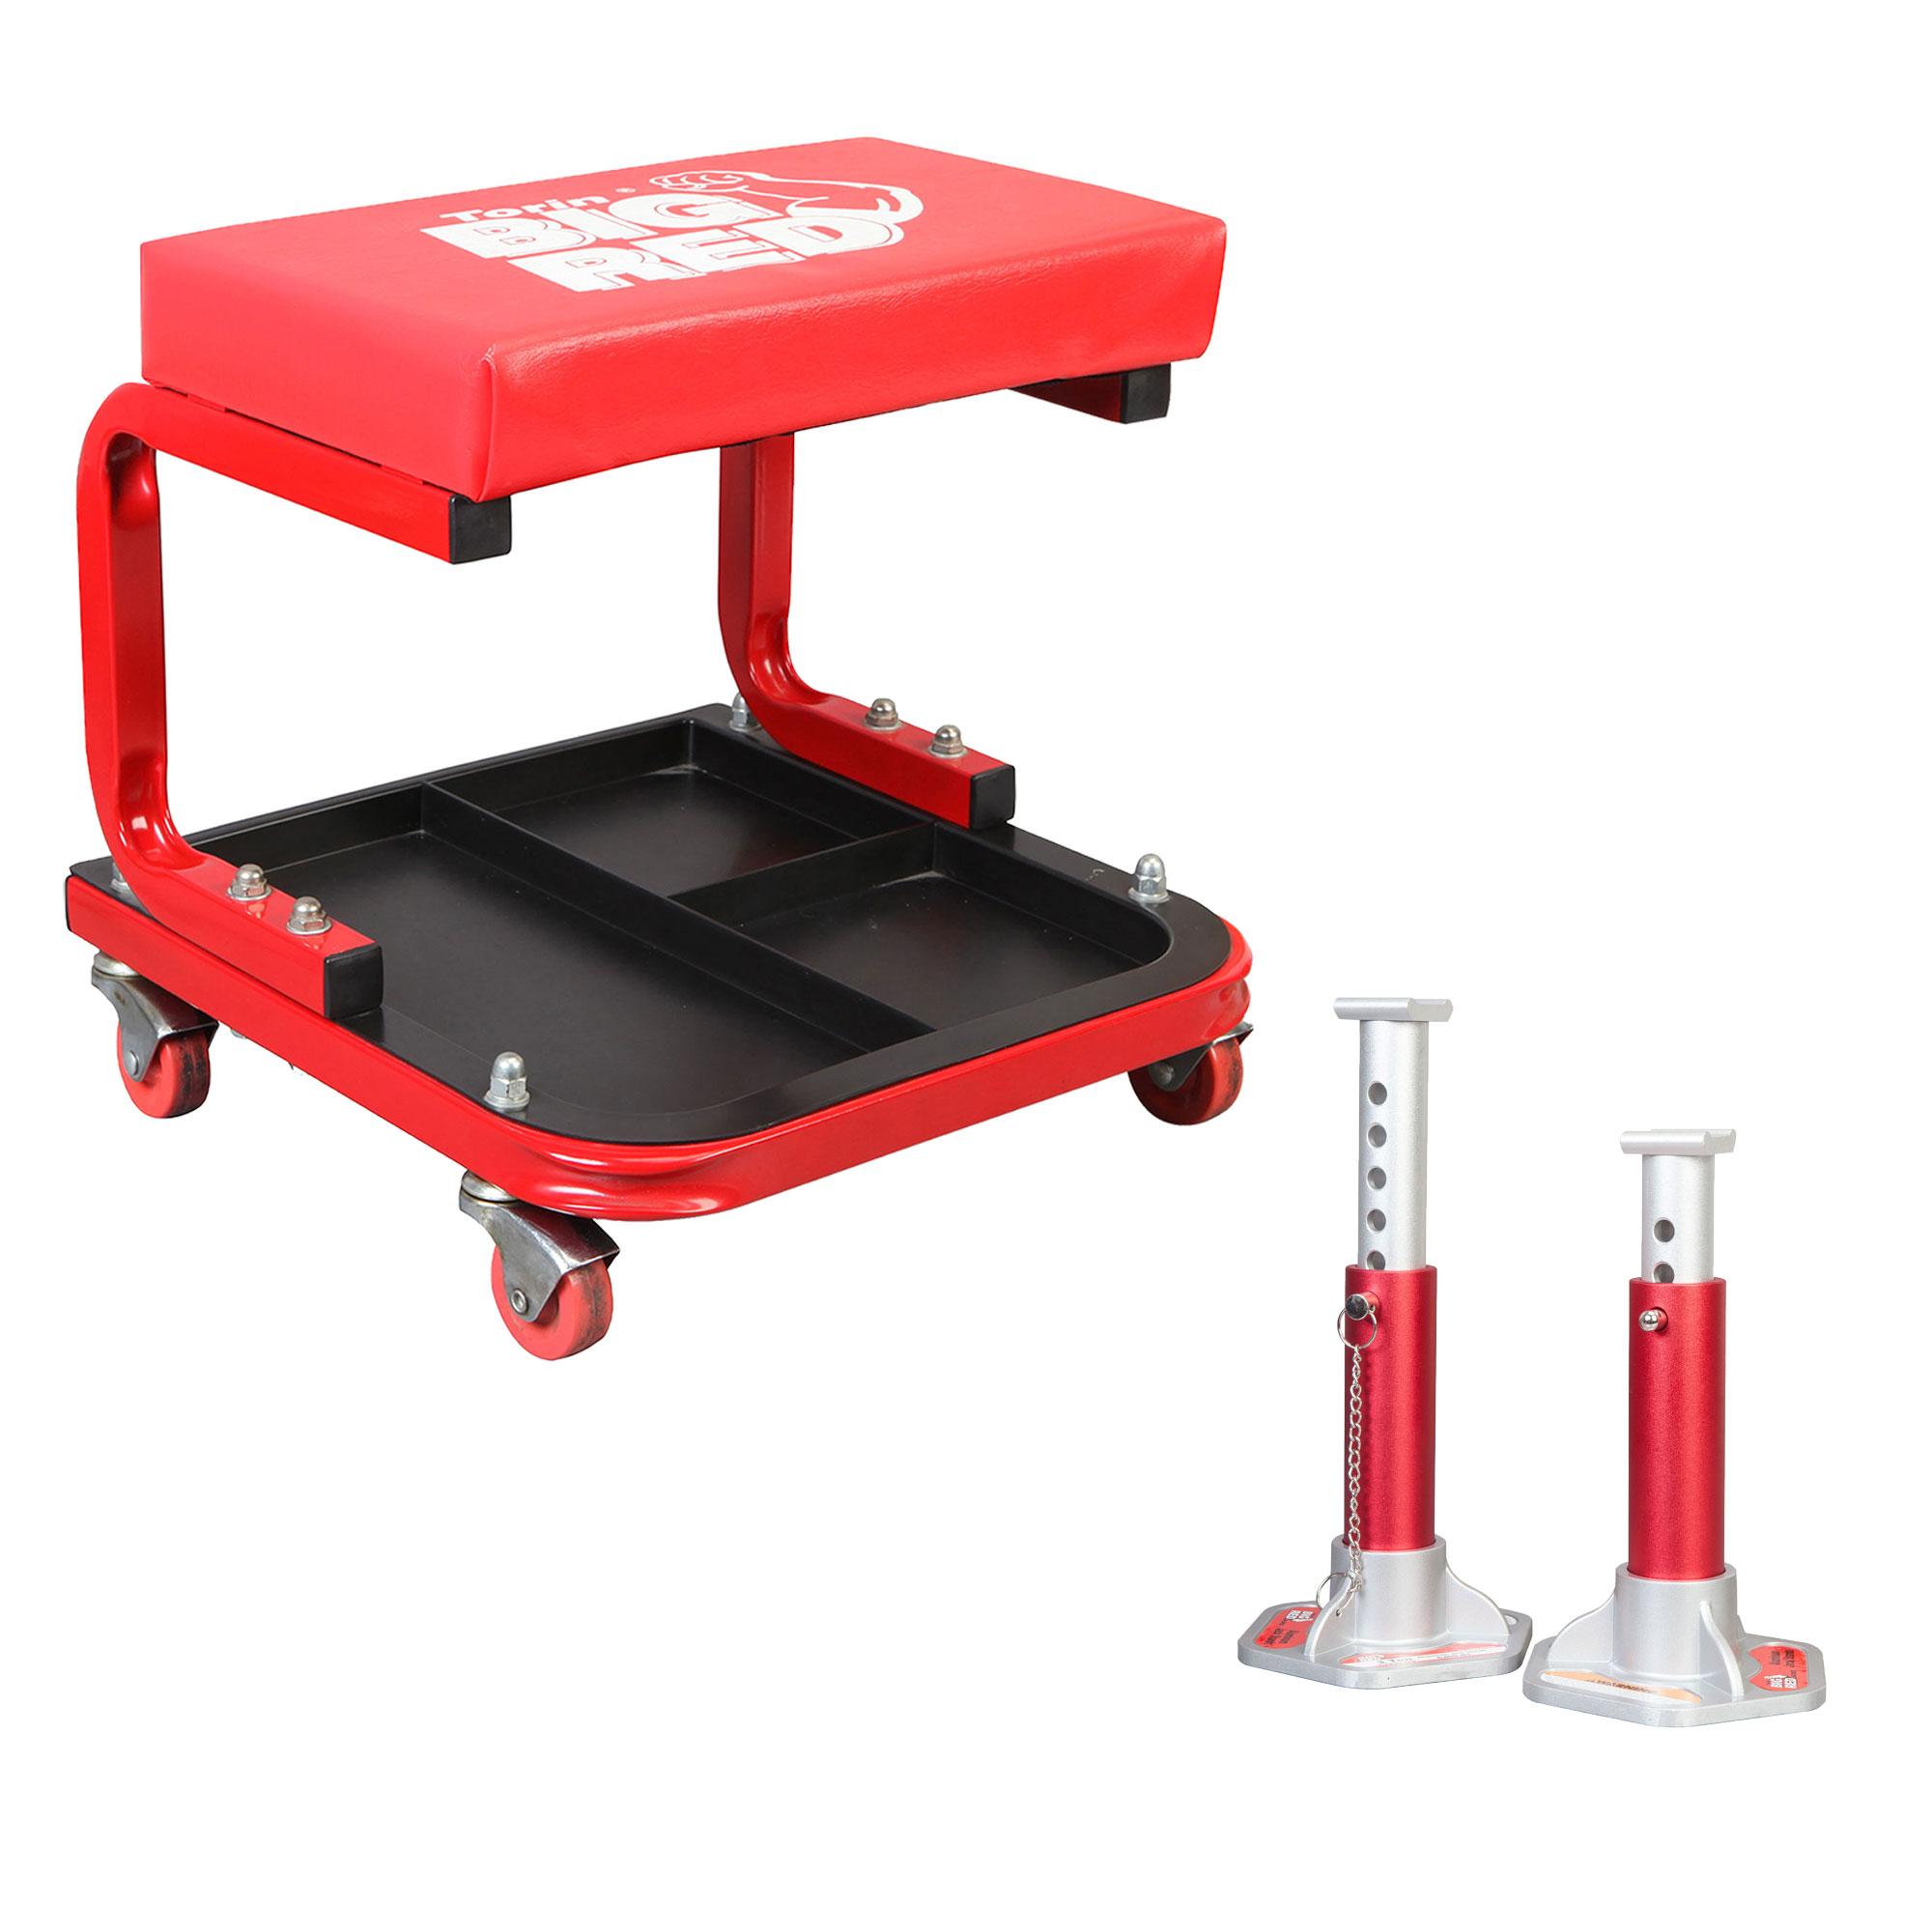 Torin Rolling Creeper Padded Seat Stool with Tool Tray and Aluminum Jack Stands